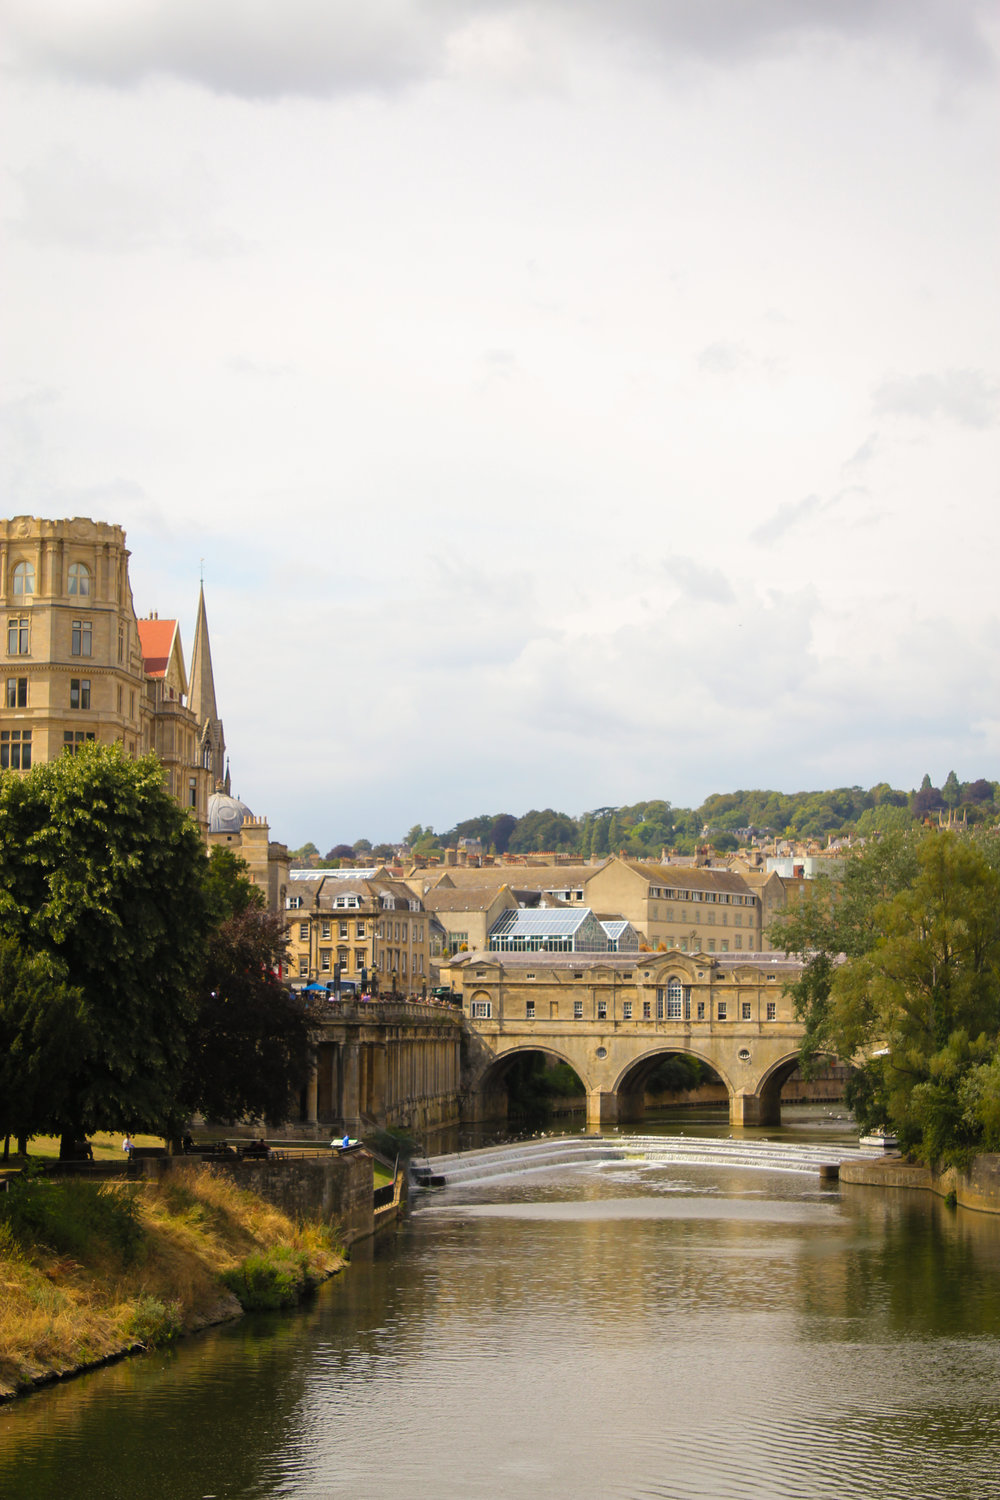 9th August - a lovely day trip to Bath